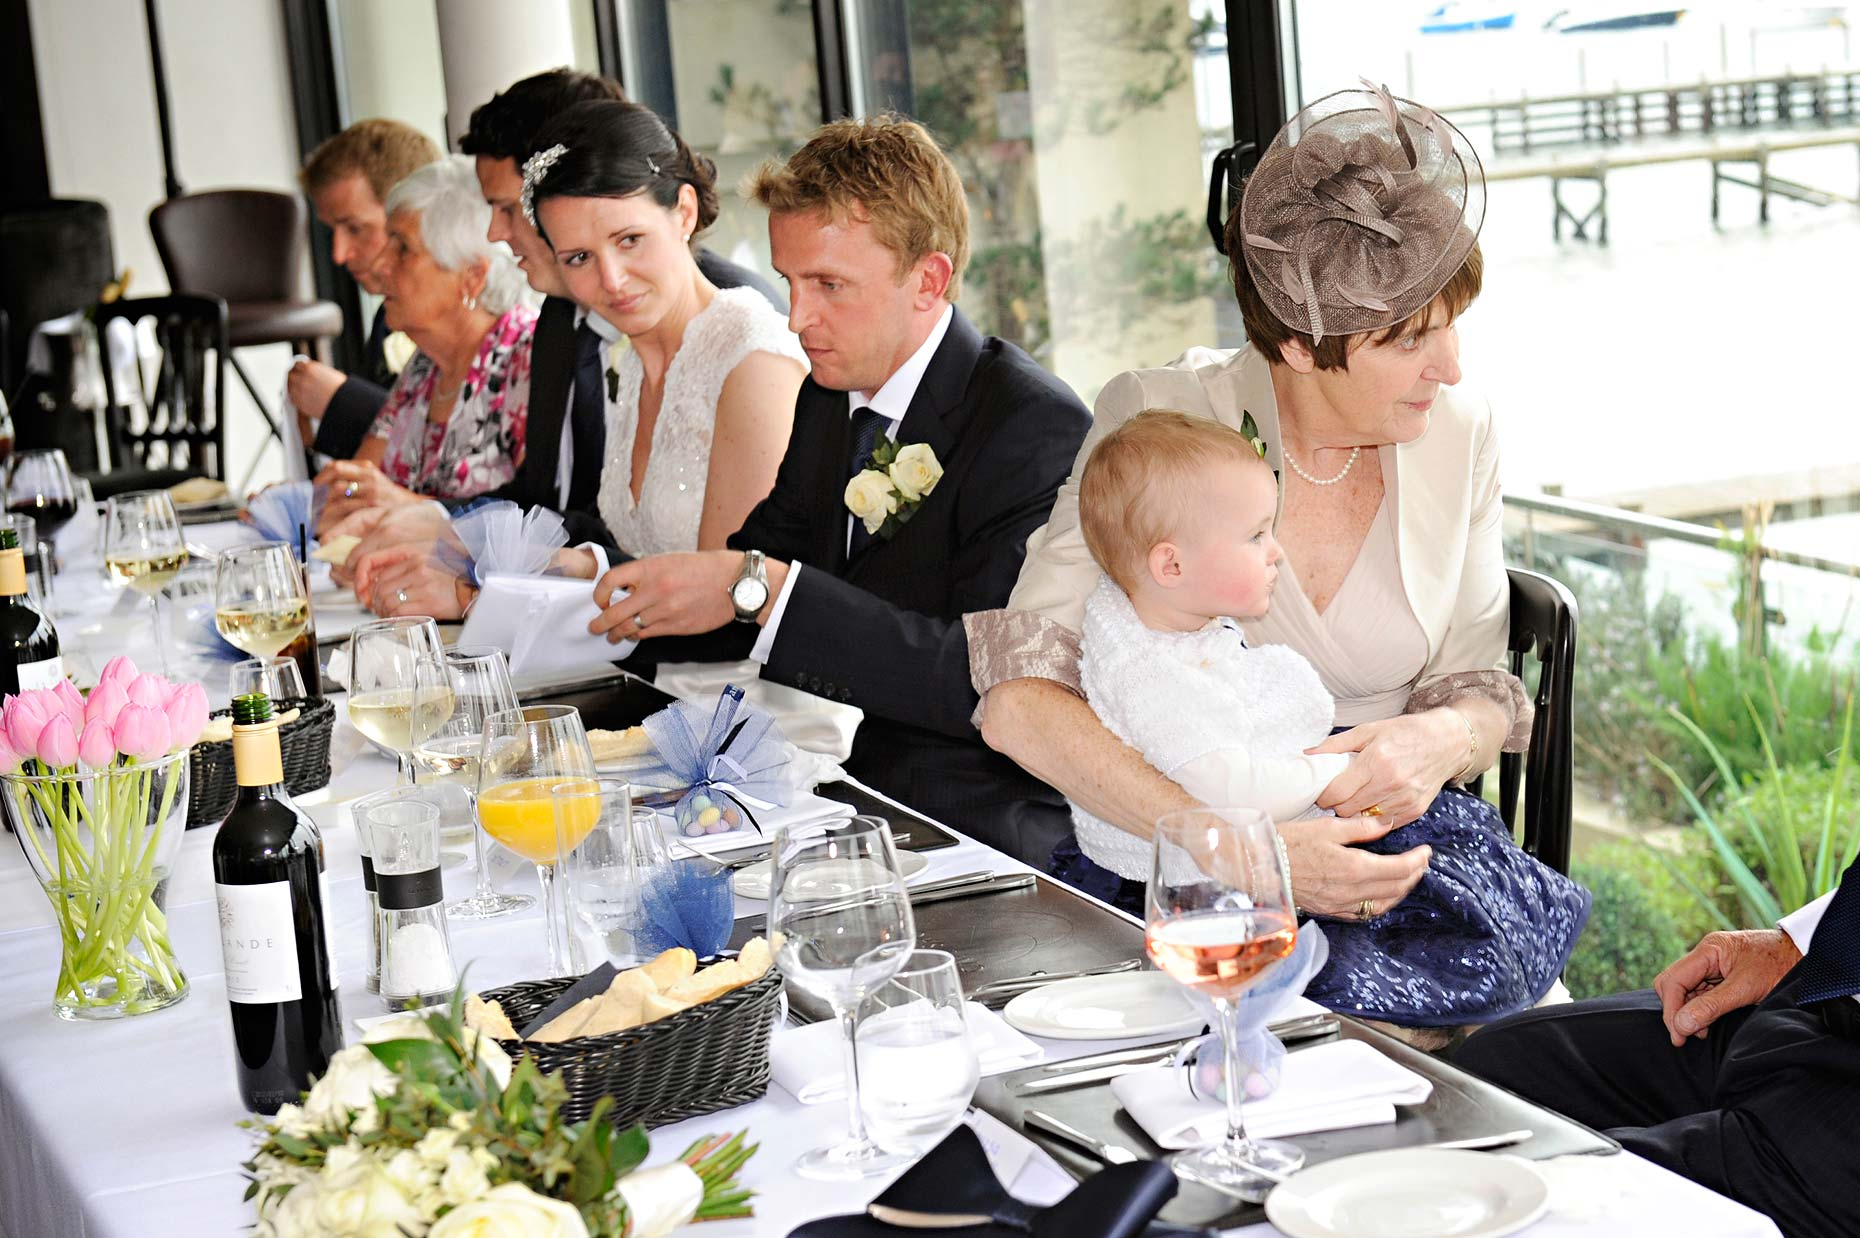 0141-Wedding-Reception-Cafe-Shore-Bar-and-Restaurant-Sandbanks-Poole-Dorset-Wedding.jpg